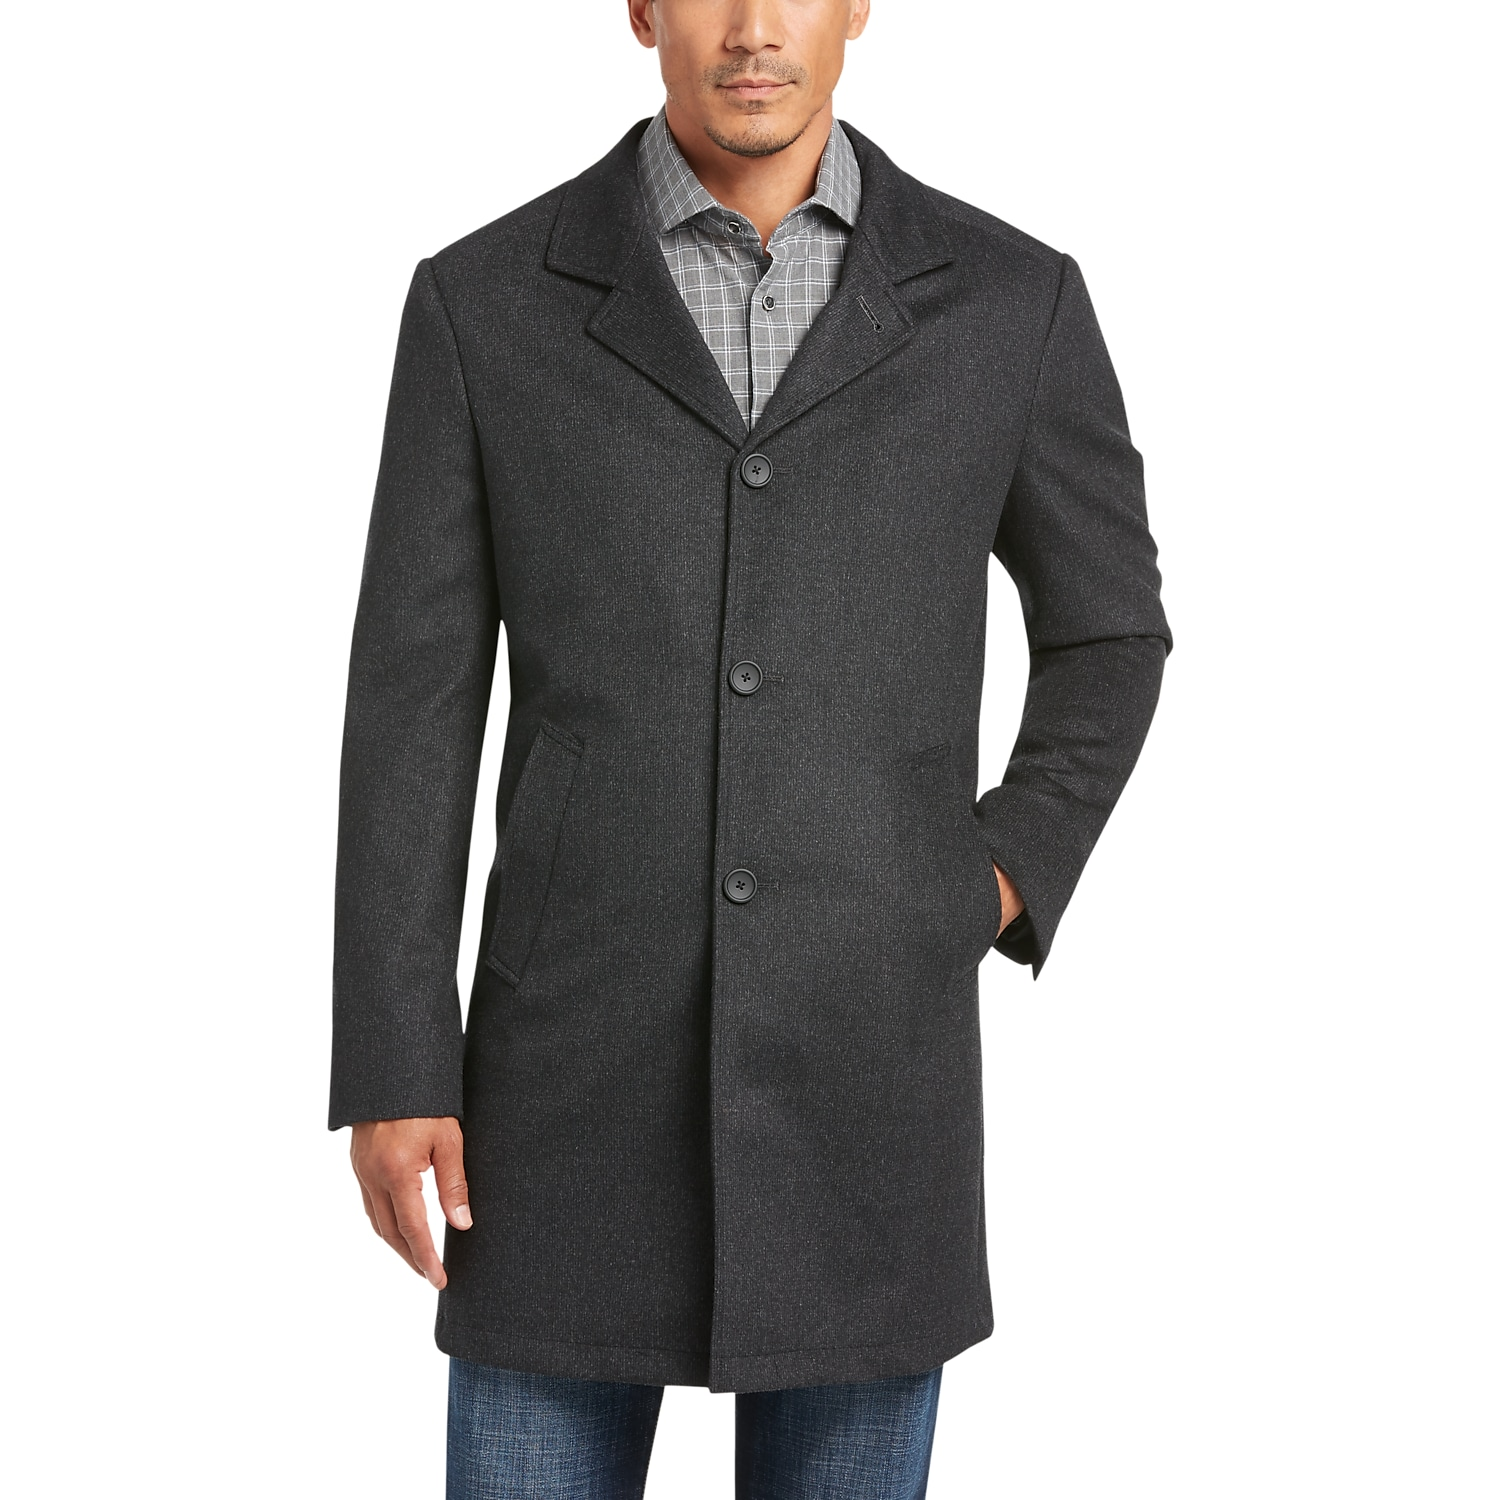 e17cf7d454e85 Mens Home - JOE Joseph Abboud Charcoal Tic Modern Fit Car Coat - Men s  Wearhouse